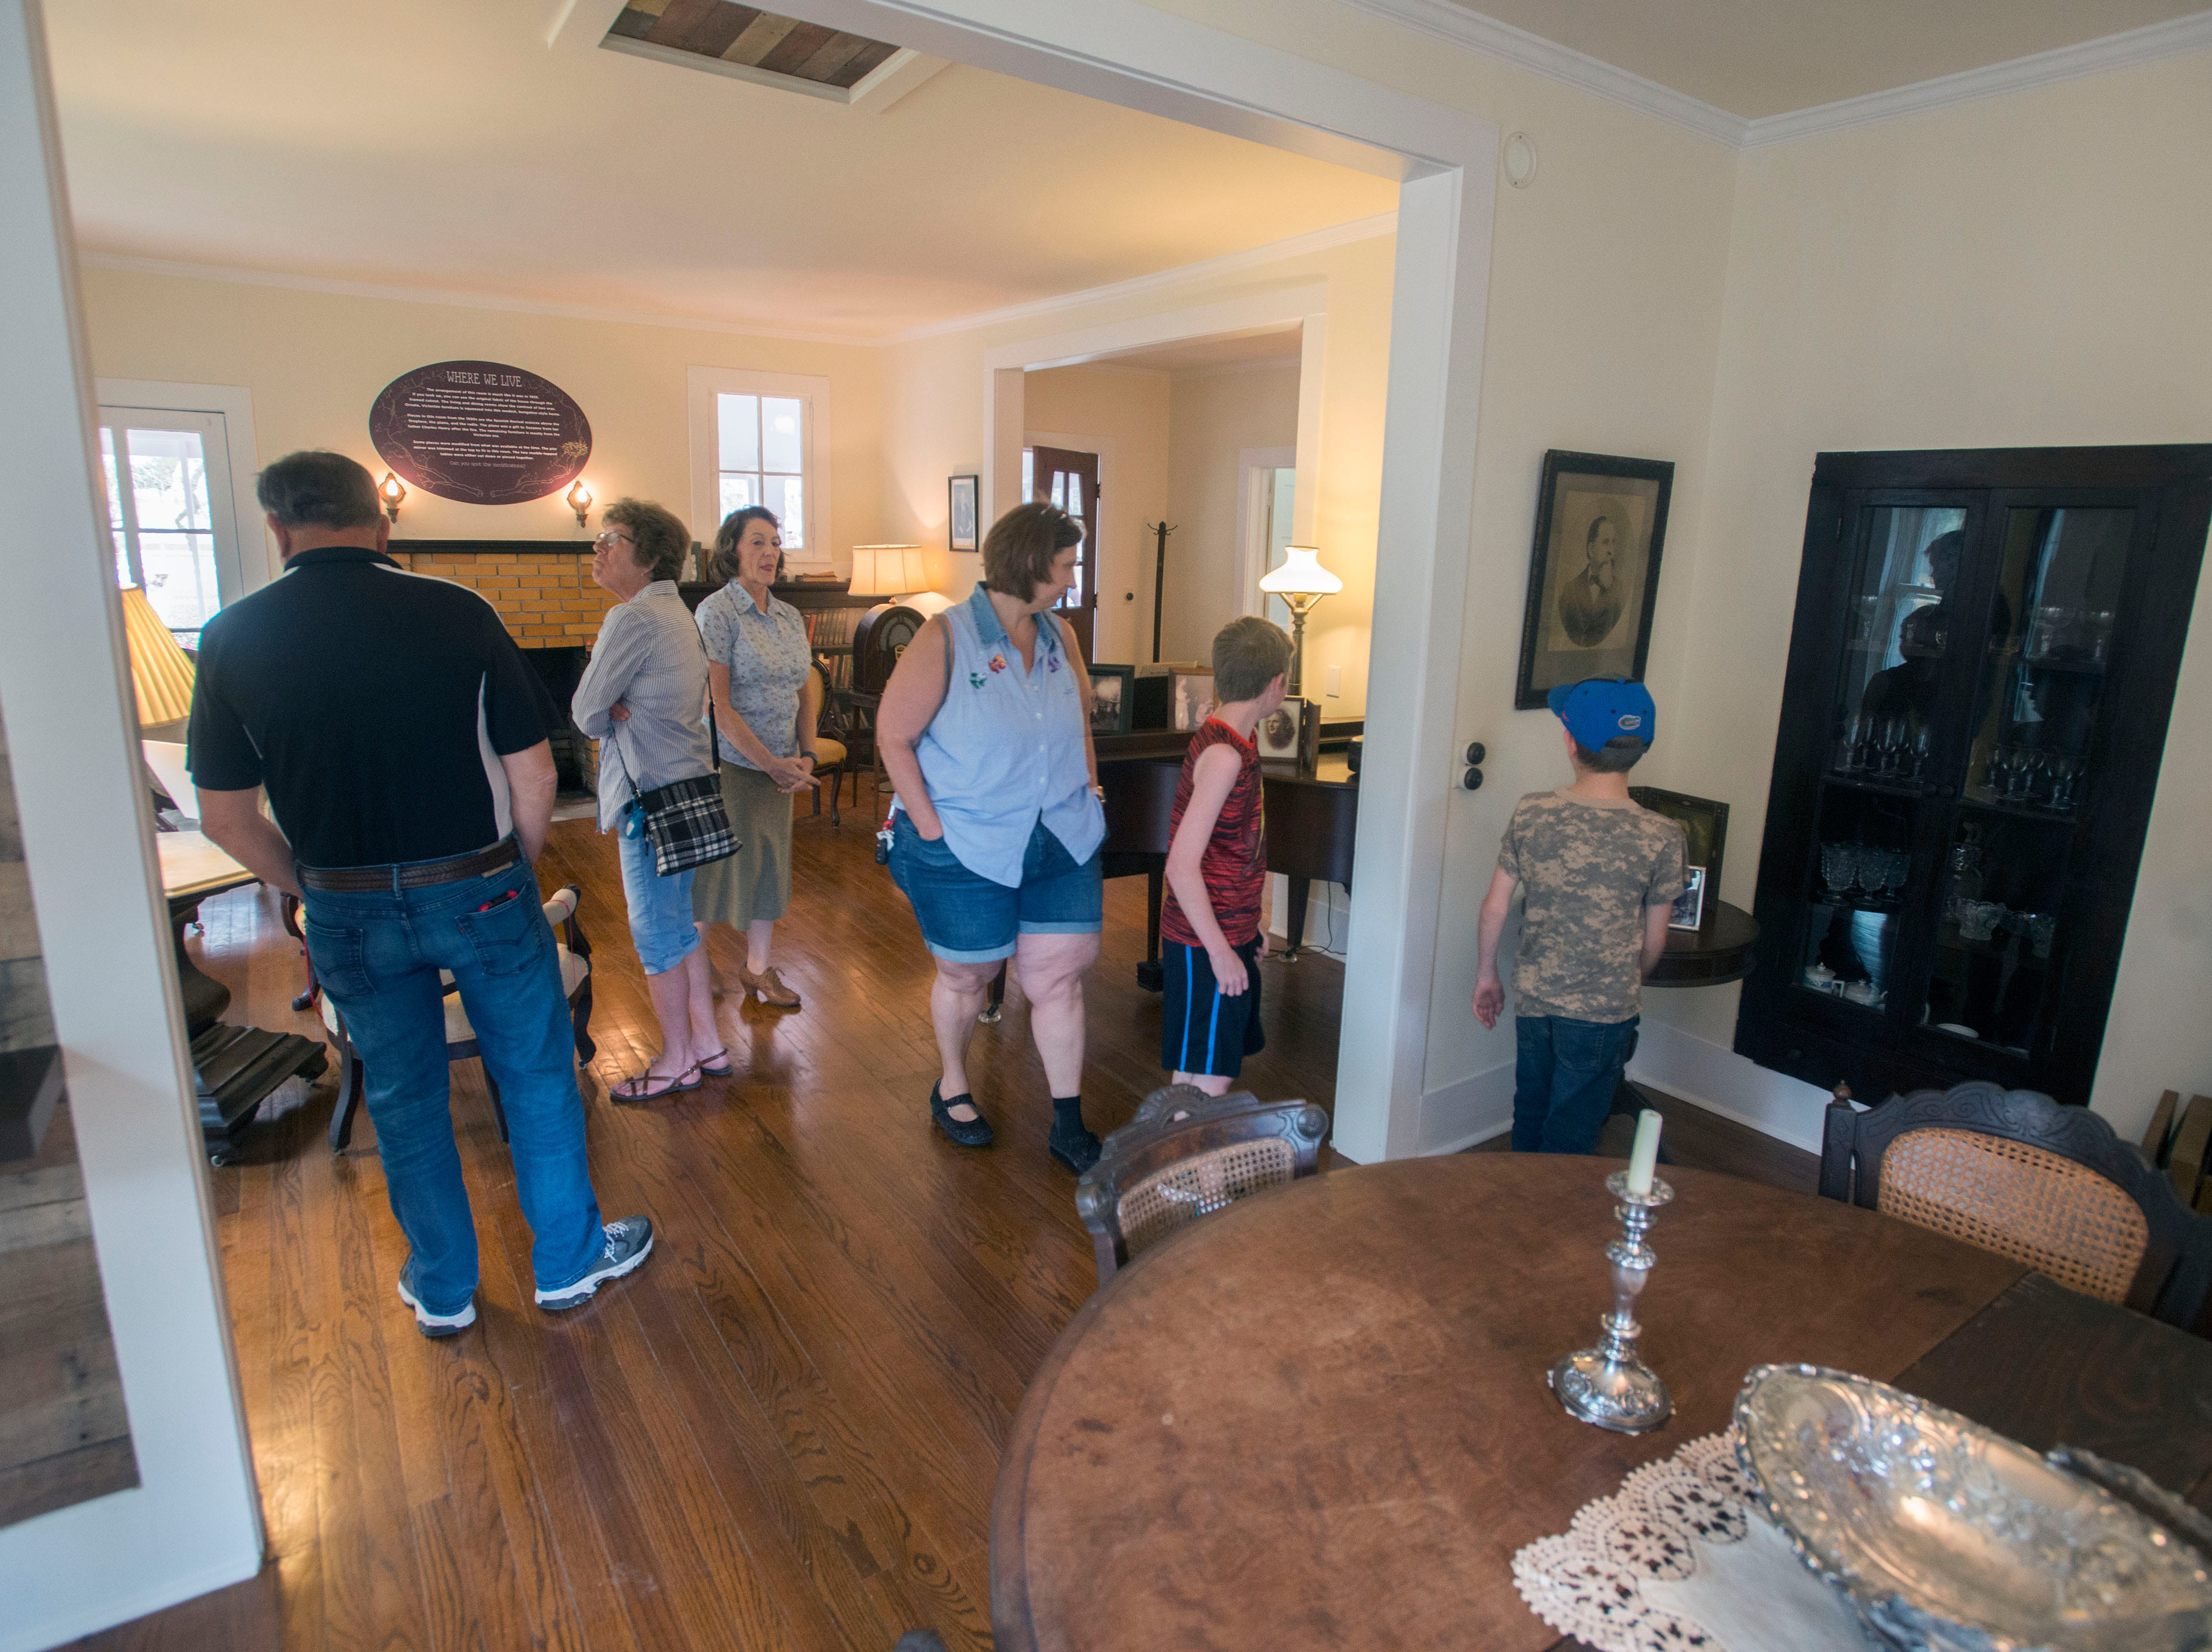 Visitors enjoy the Arcadia Homestead grand opening for the Simpson House interpretive center Saturday, March 9 2019 in Milton. The grand opening included food, displays a petting zoo and more.